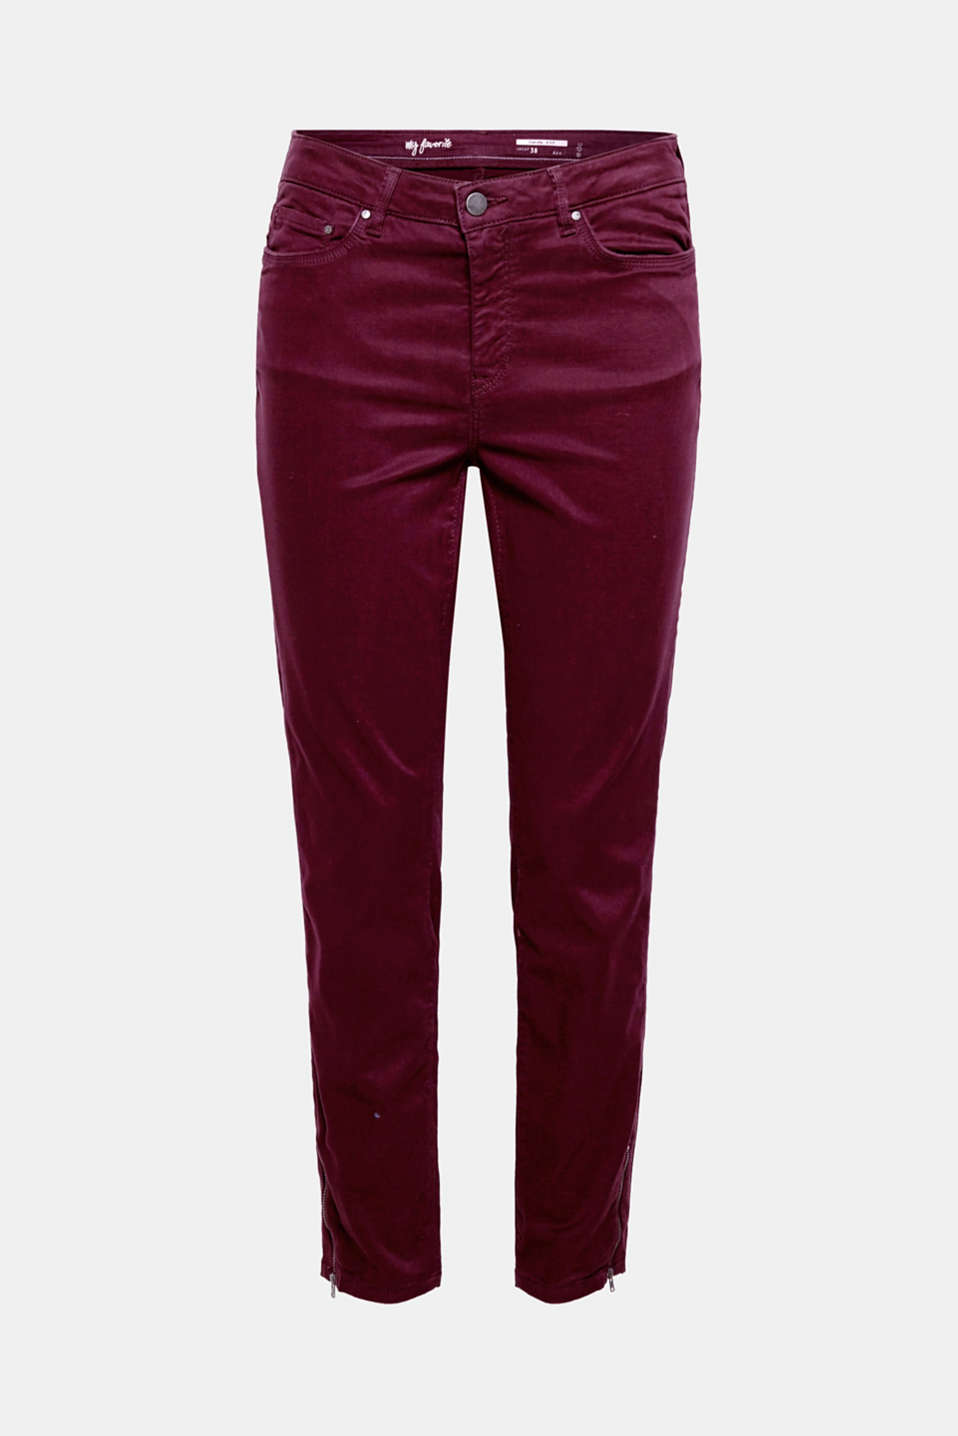 The soft outer surface makes the cropped premium trousers with zips super comfortable and a favourite best-seller!